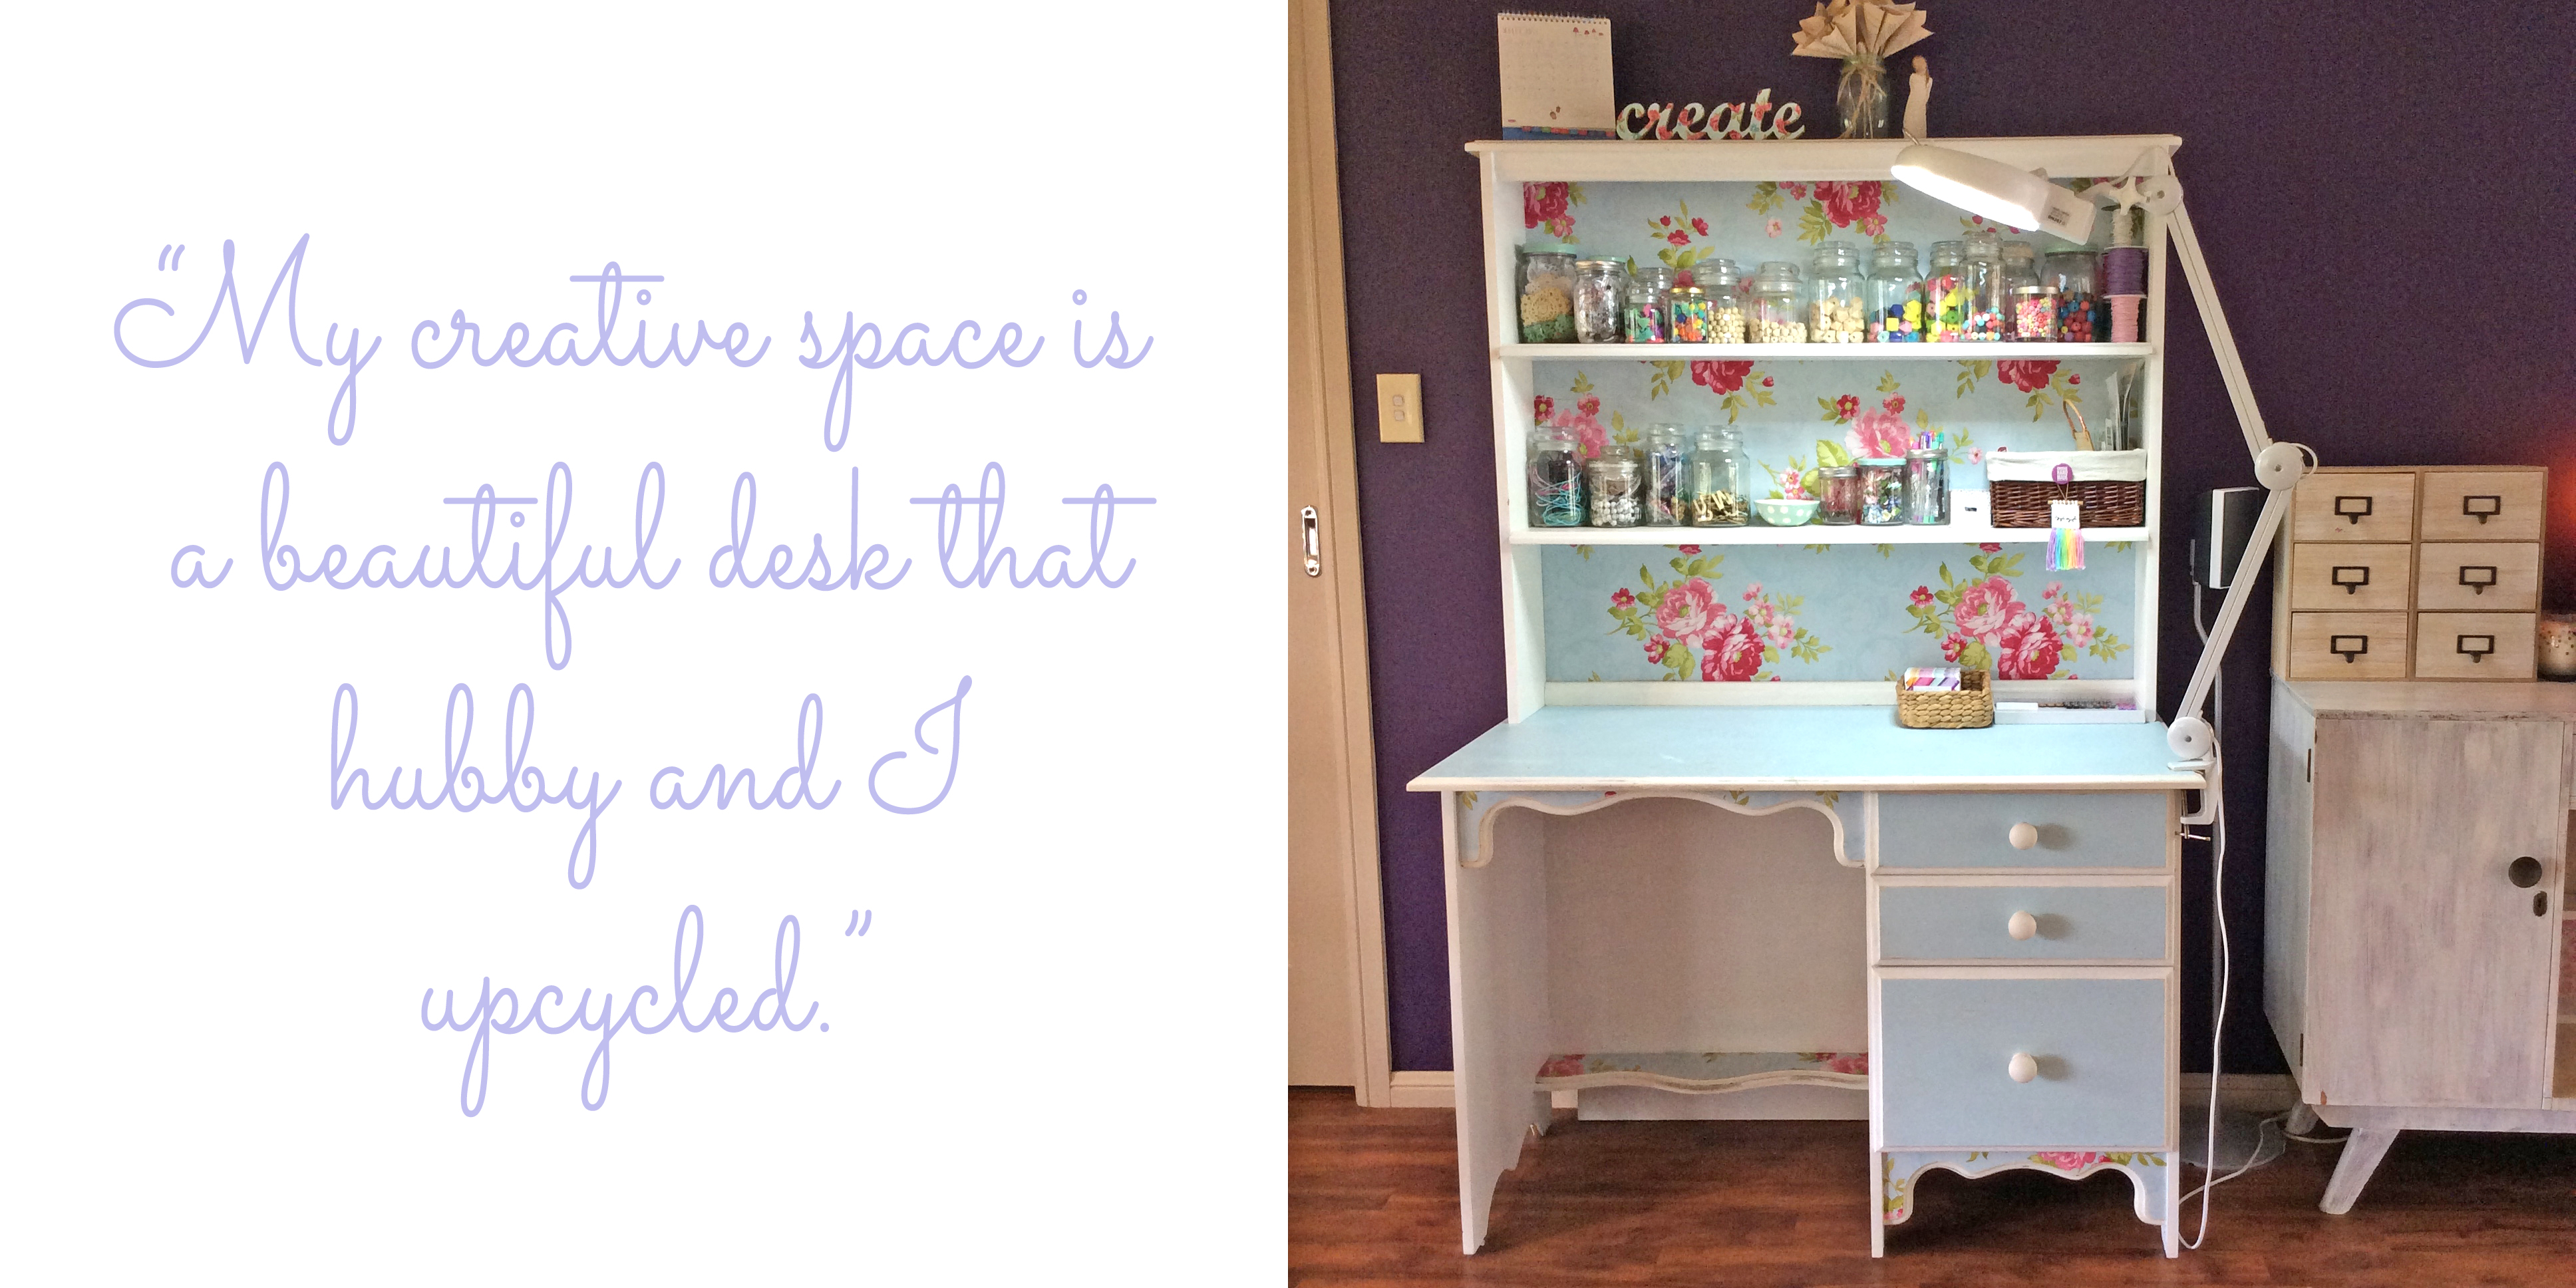 "Carly's creative workspace at home: ""My creative space is a beautiful desk that hubby and I upcycled."""